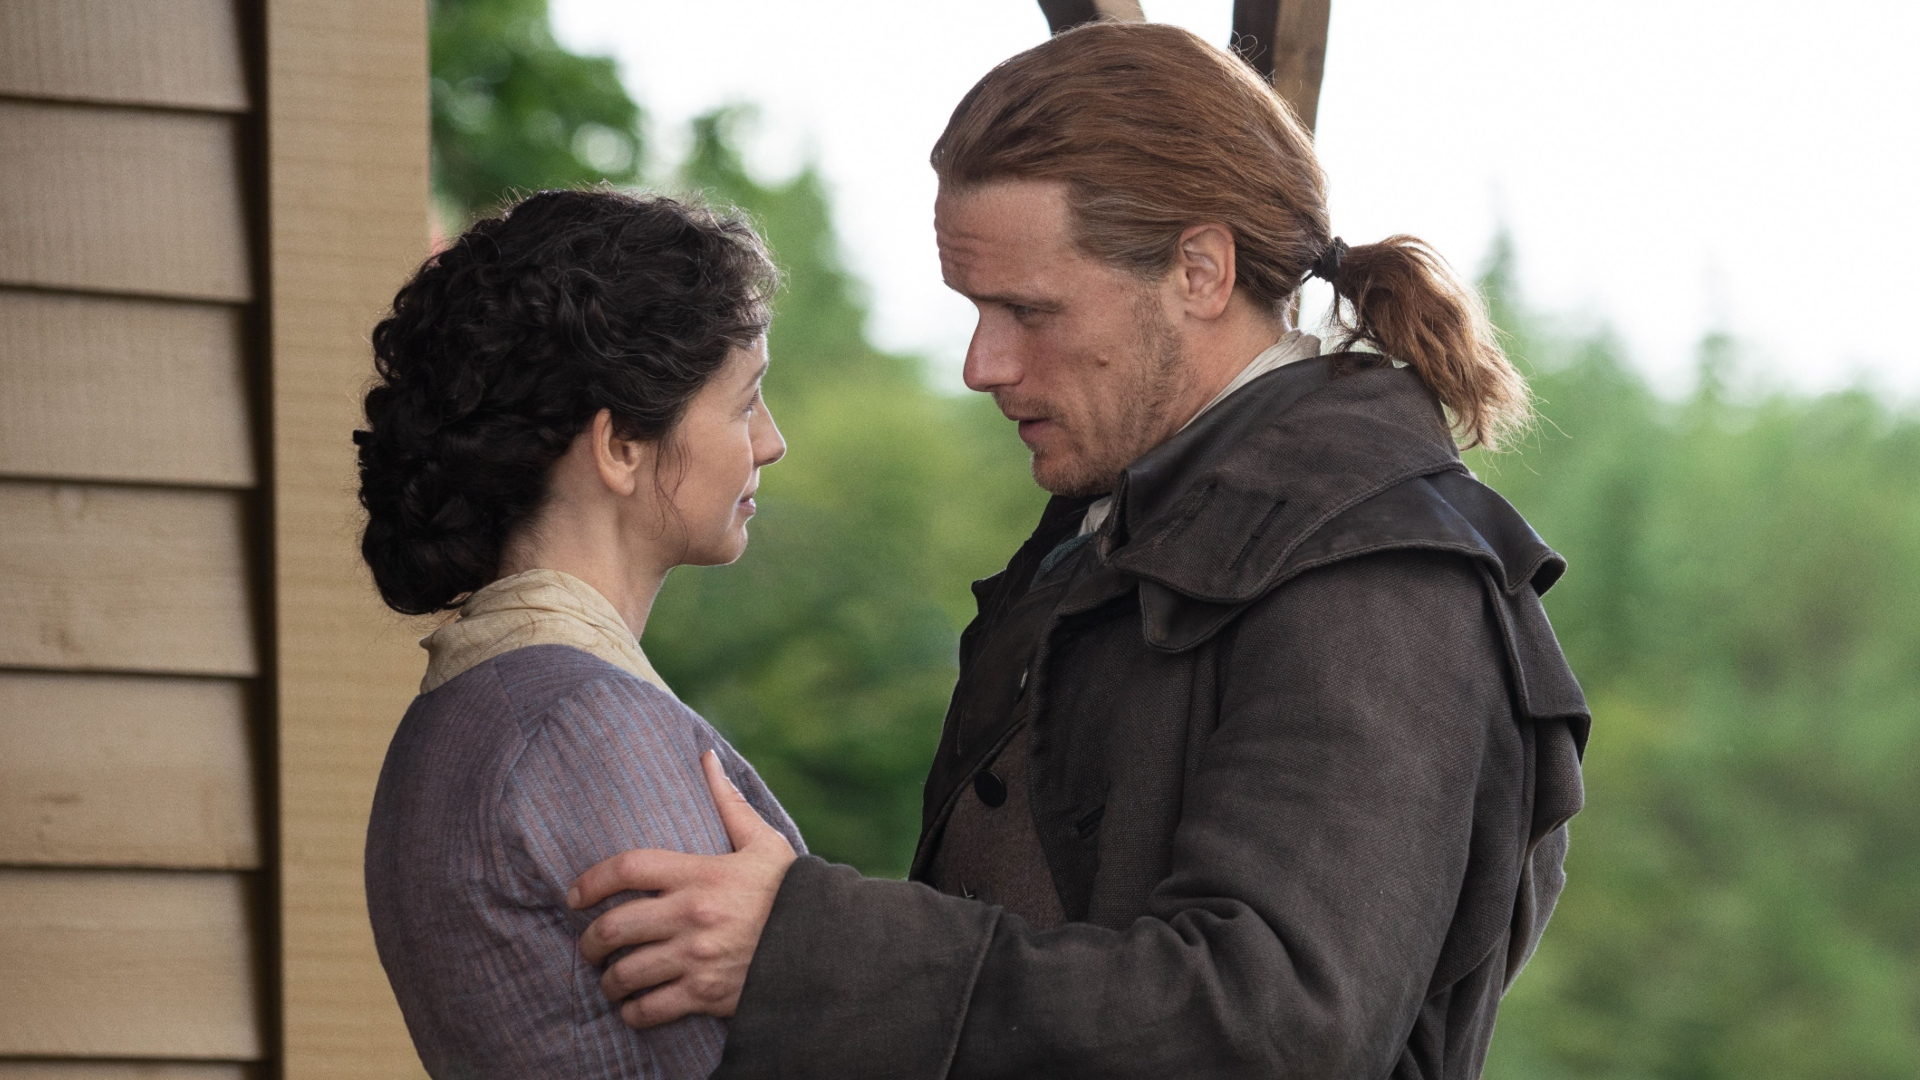 We're Swooning at This Newly Released 'Outlander' Scene of Claire & Jamie